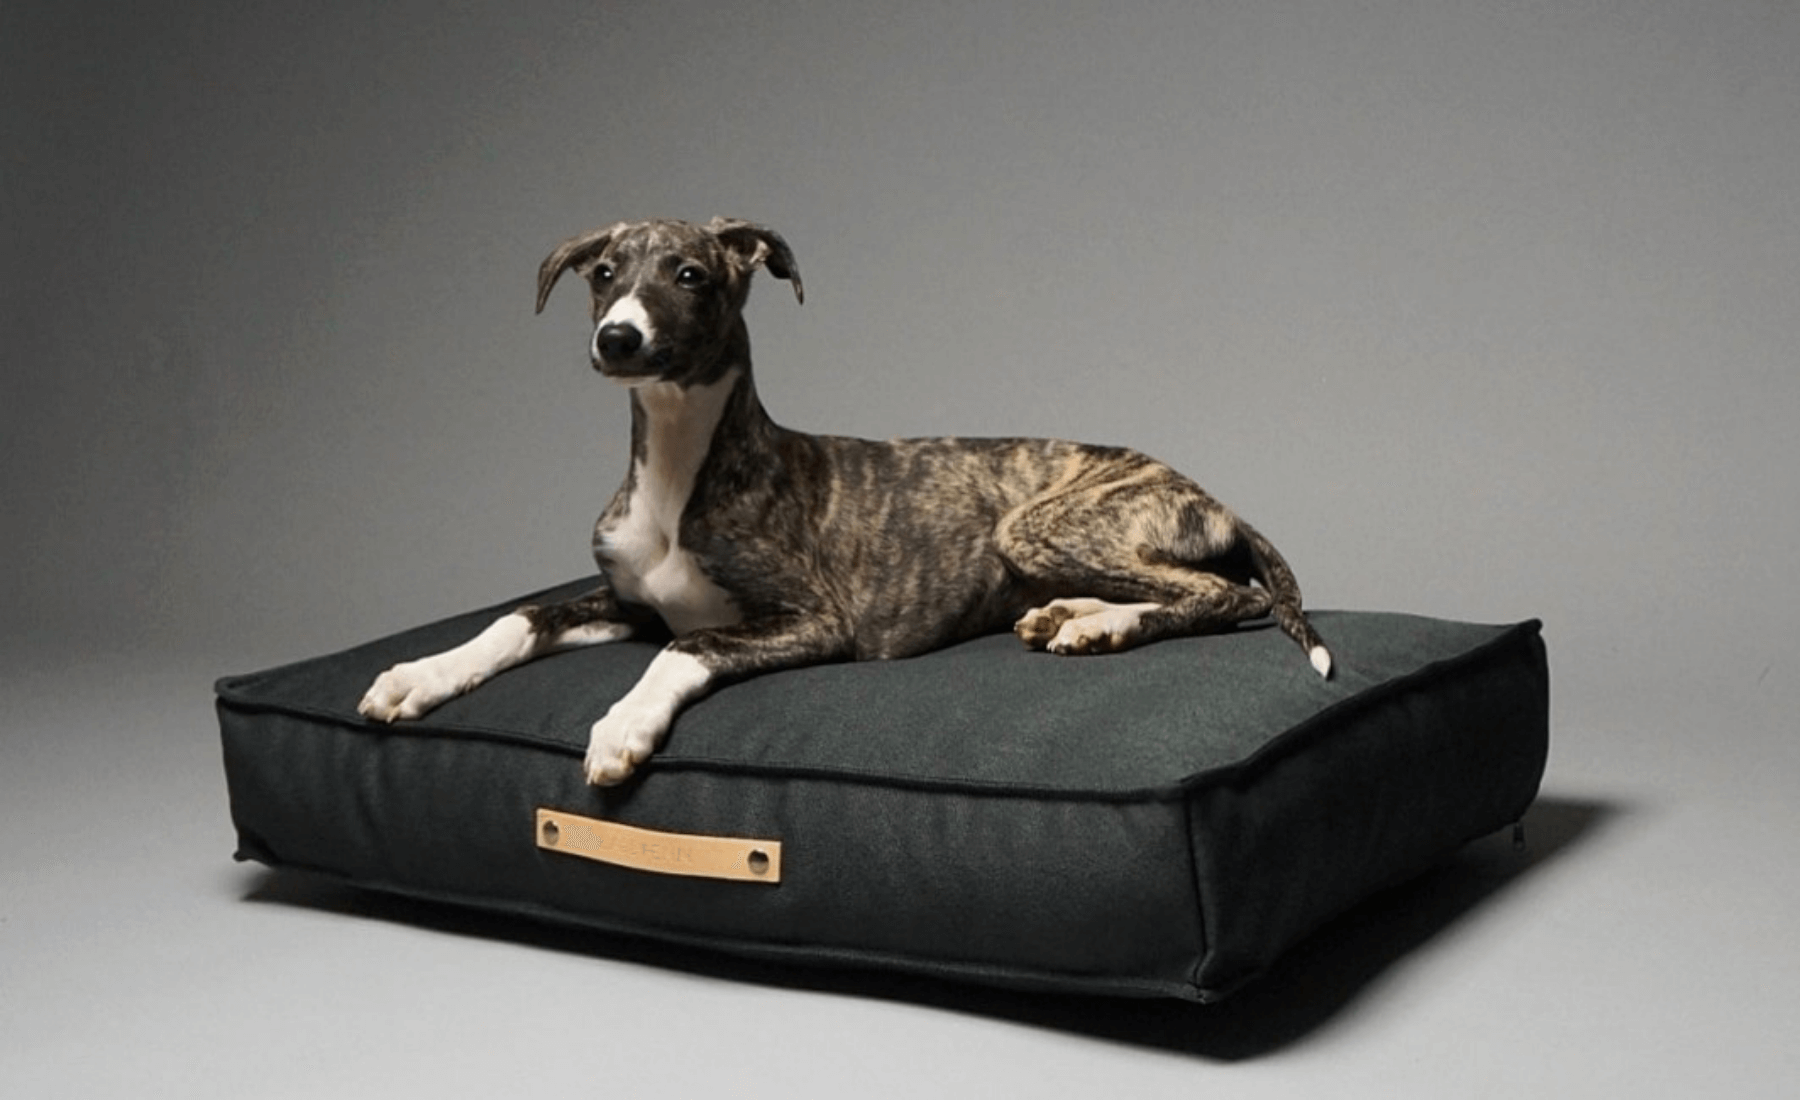 10 Luxury & Orthopedic Dog Beds 2021 UK